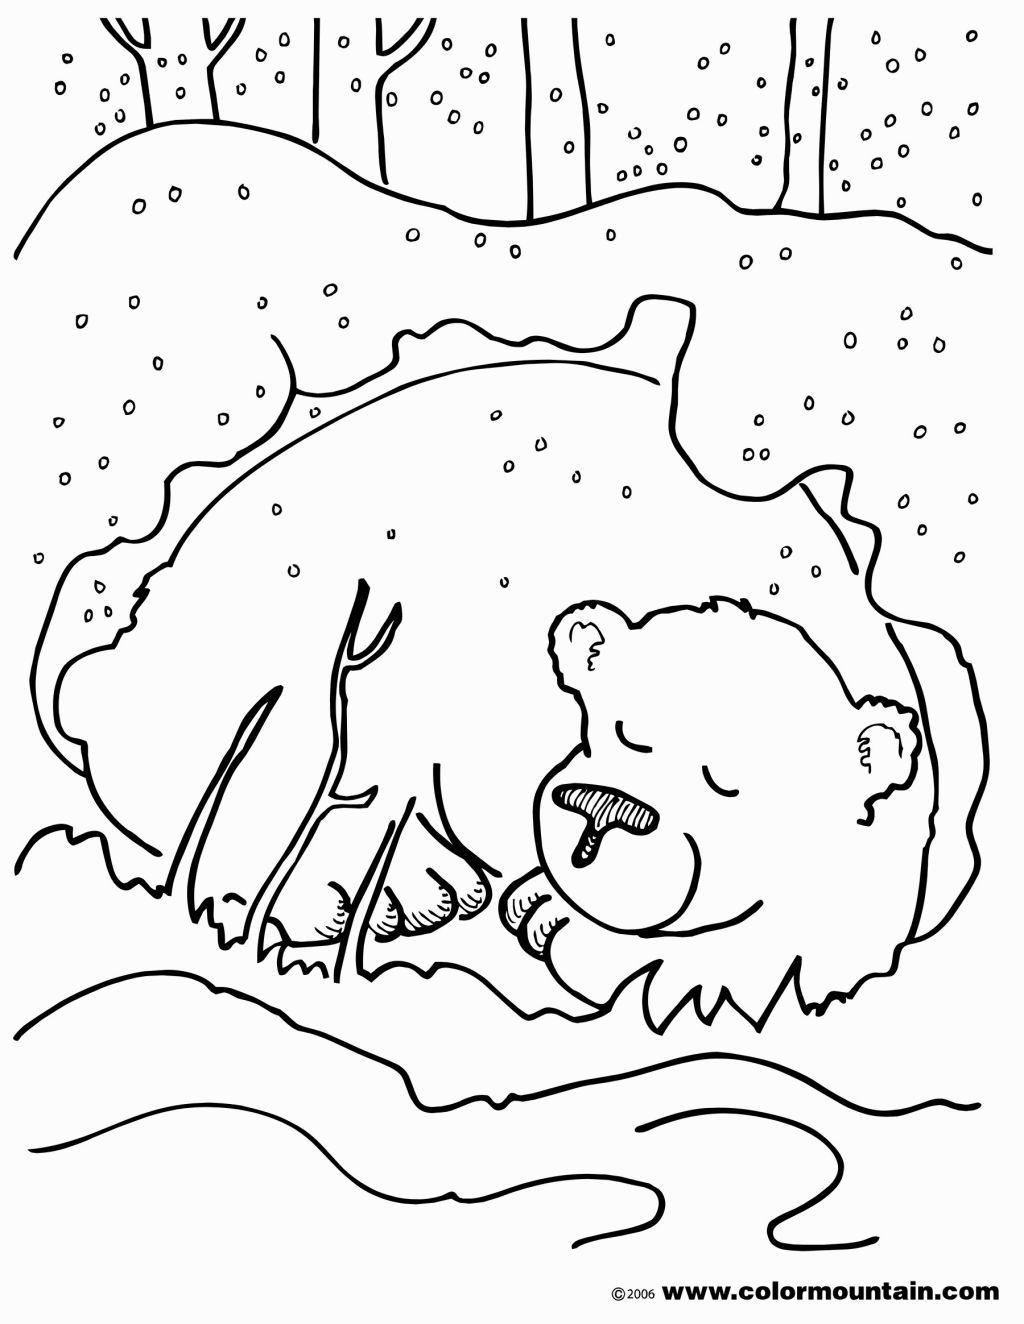 Brown Bear Coloring Pages Bear coloring pages, Teddy